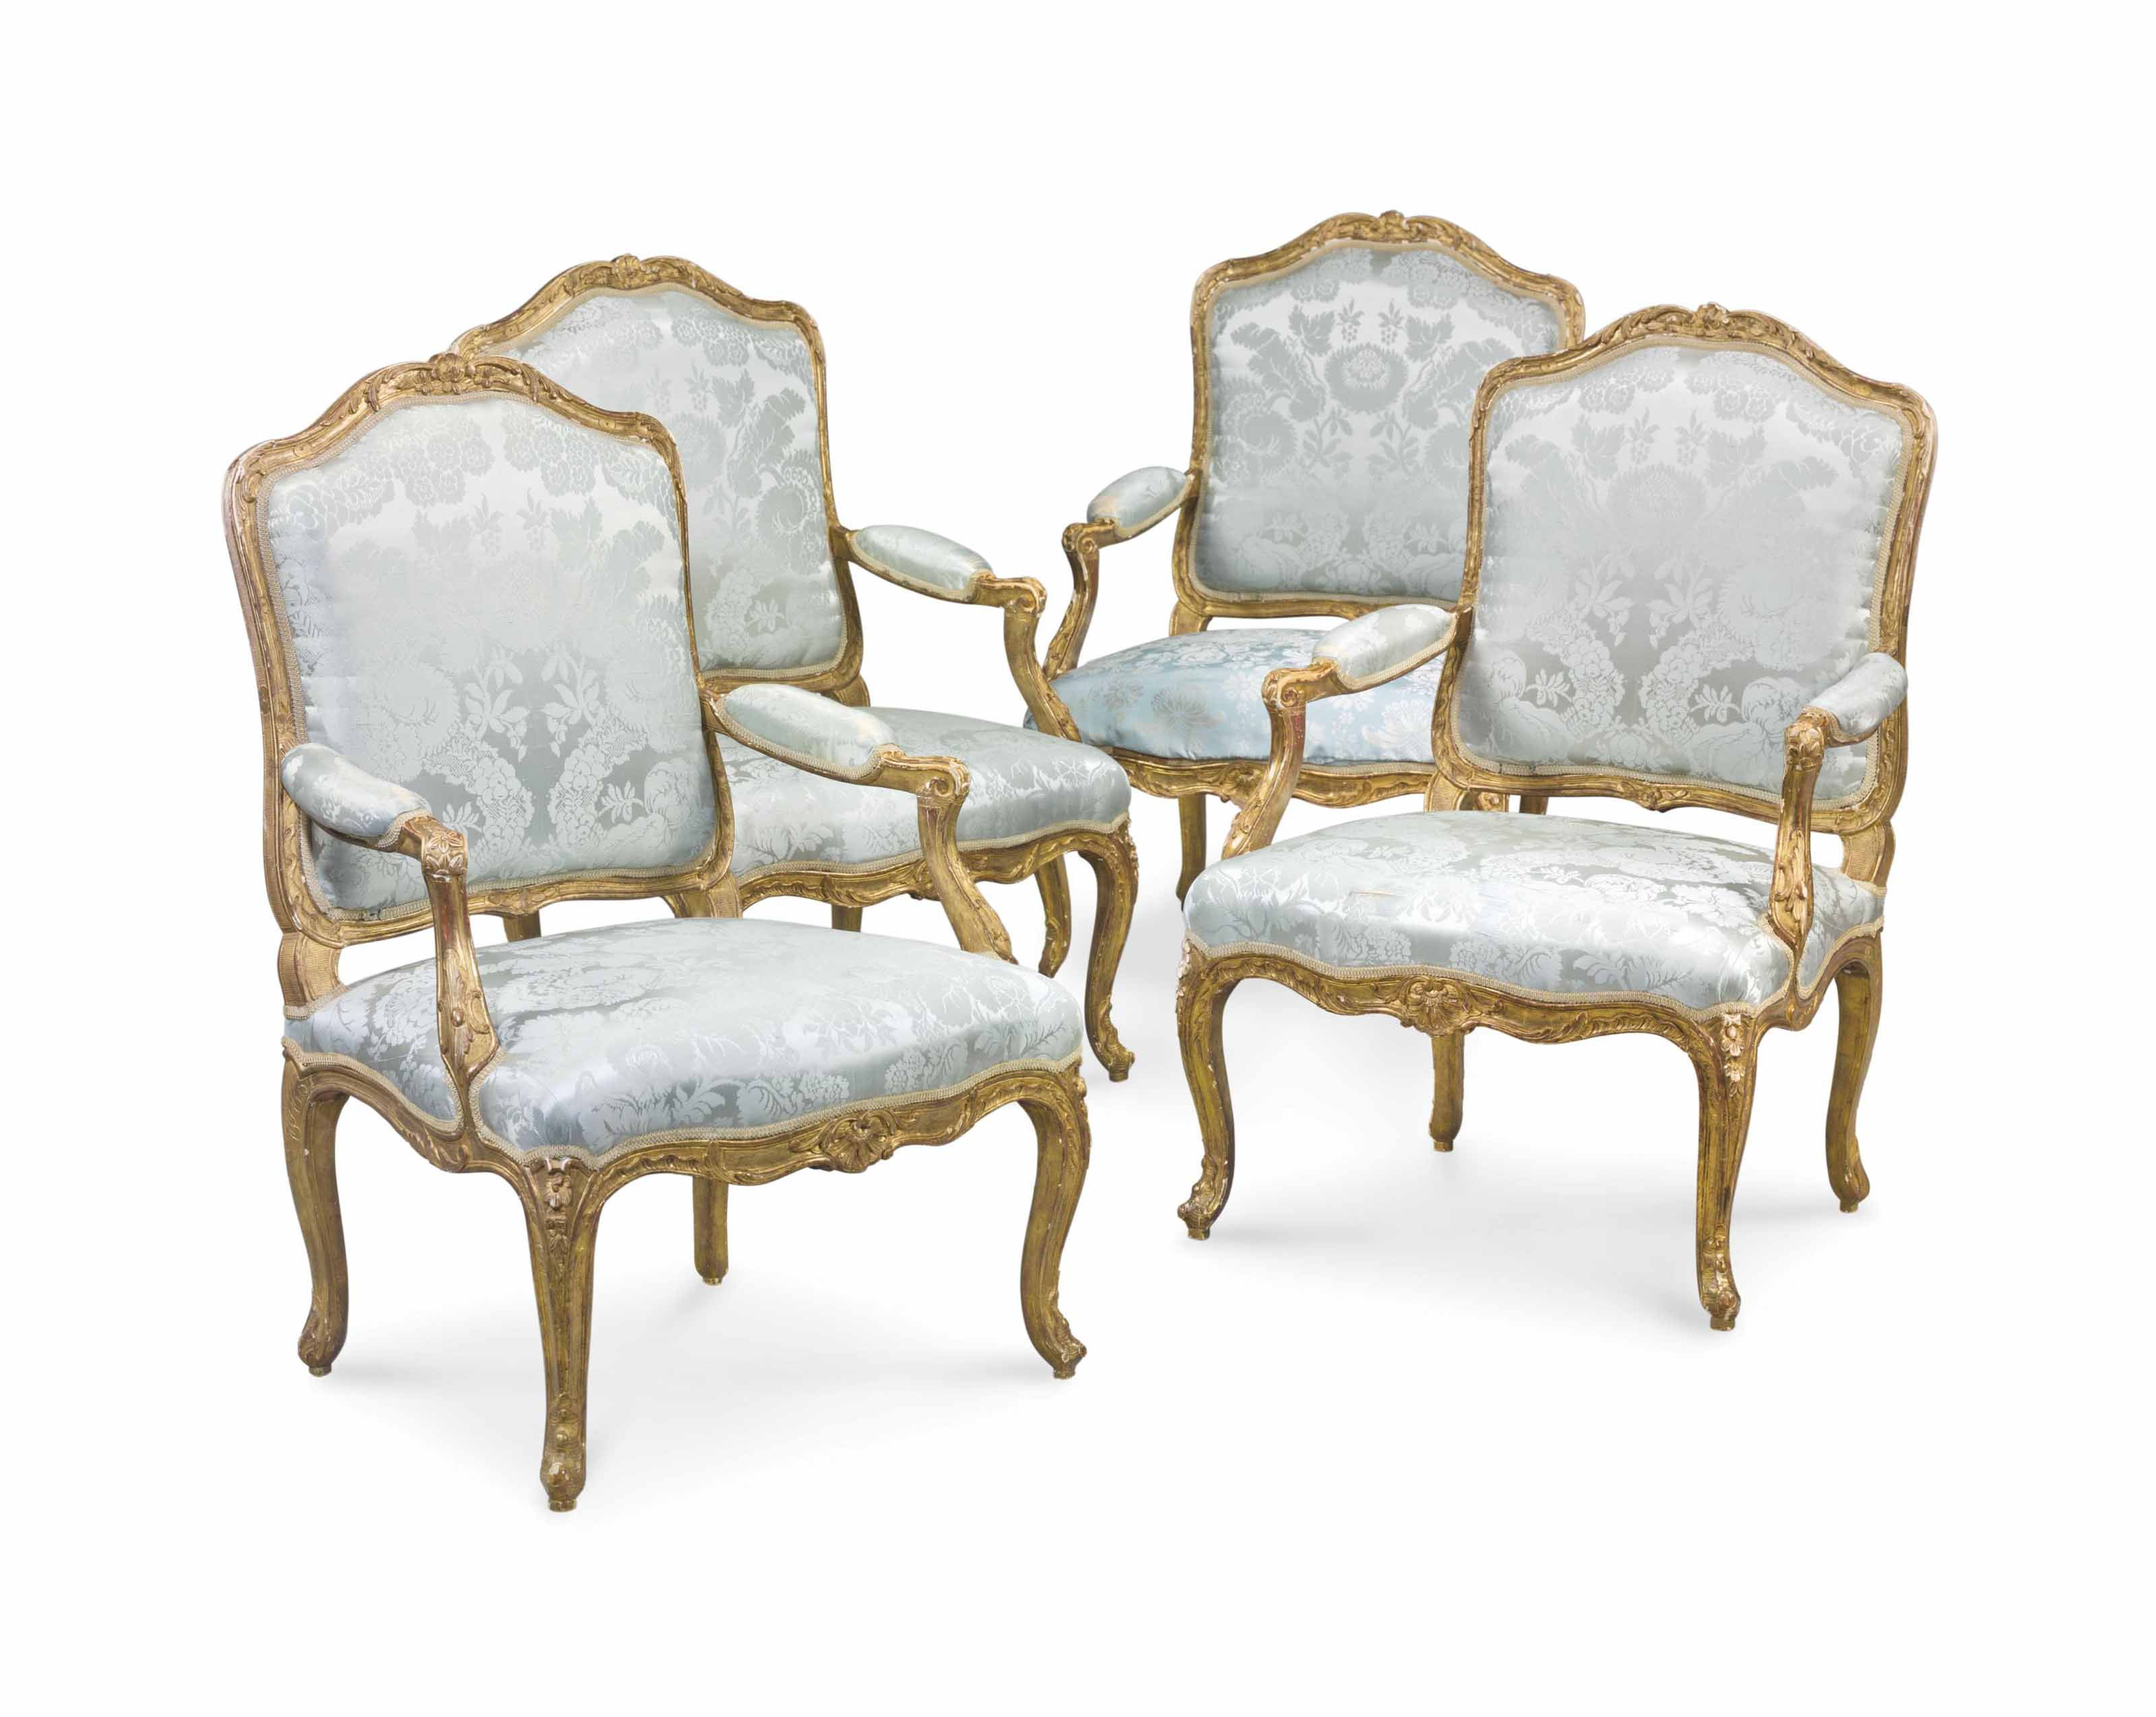 4 Fauteuils Louis Xv A Set Of Four Louis Xv Giltwood Fauteuils A La Reine By